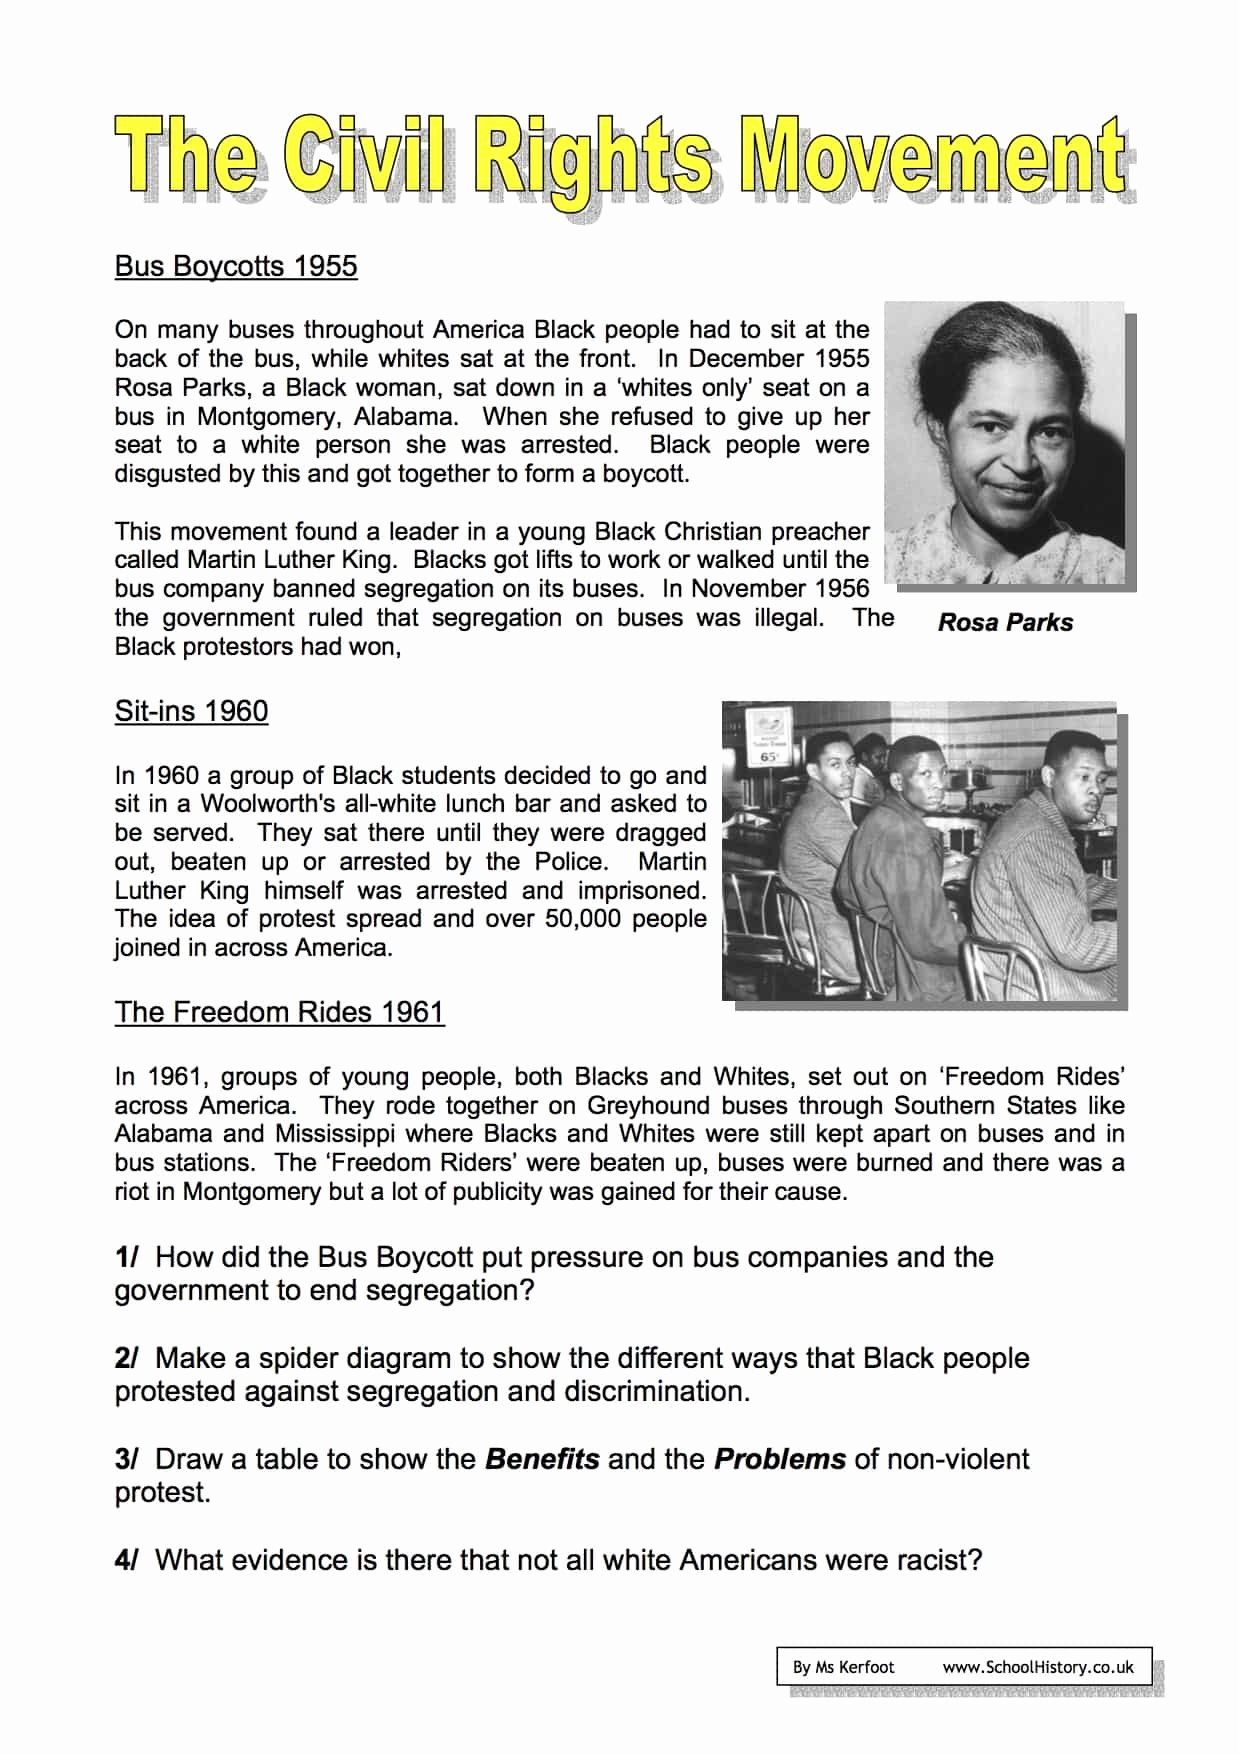 Civil Rights Worksheets Middle School Fresh the Civil Rights Movement Worksheets Year 9 Free Pdf